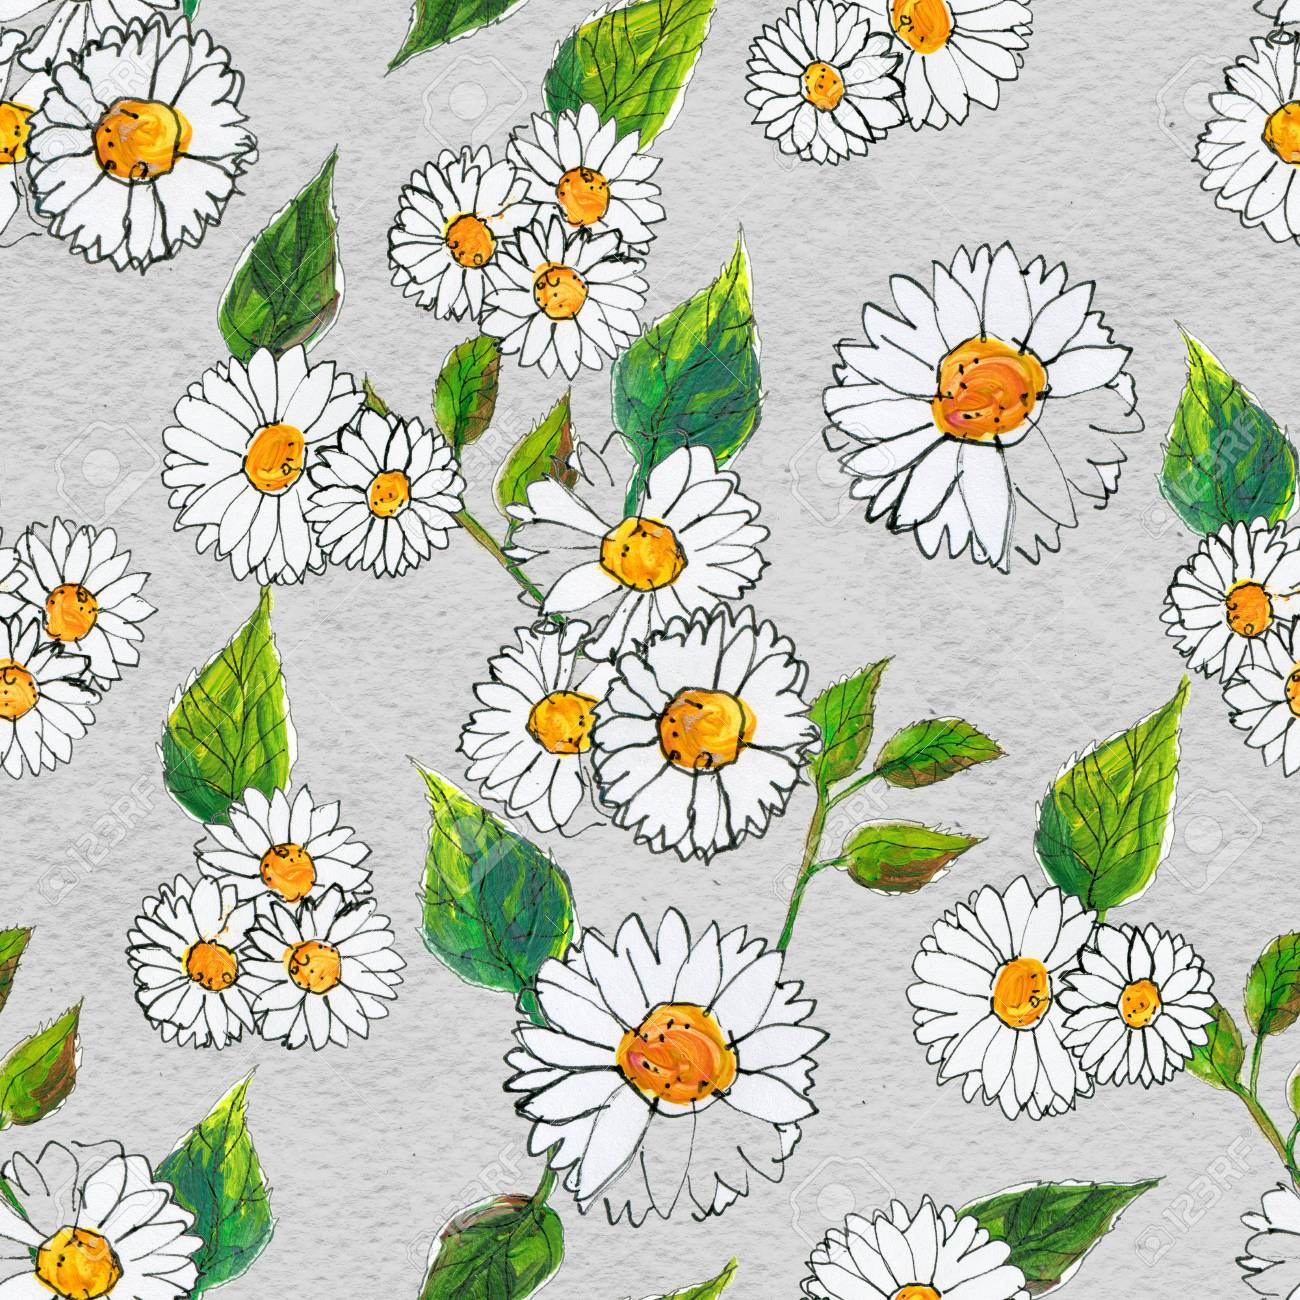 Seamless Floral Pattern With Daisy Flowers Floral Watercolor